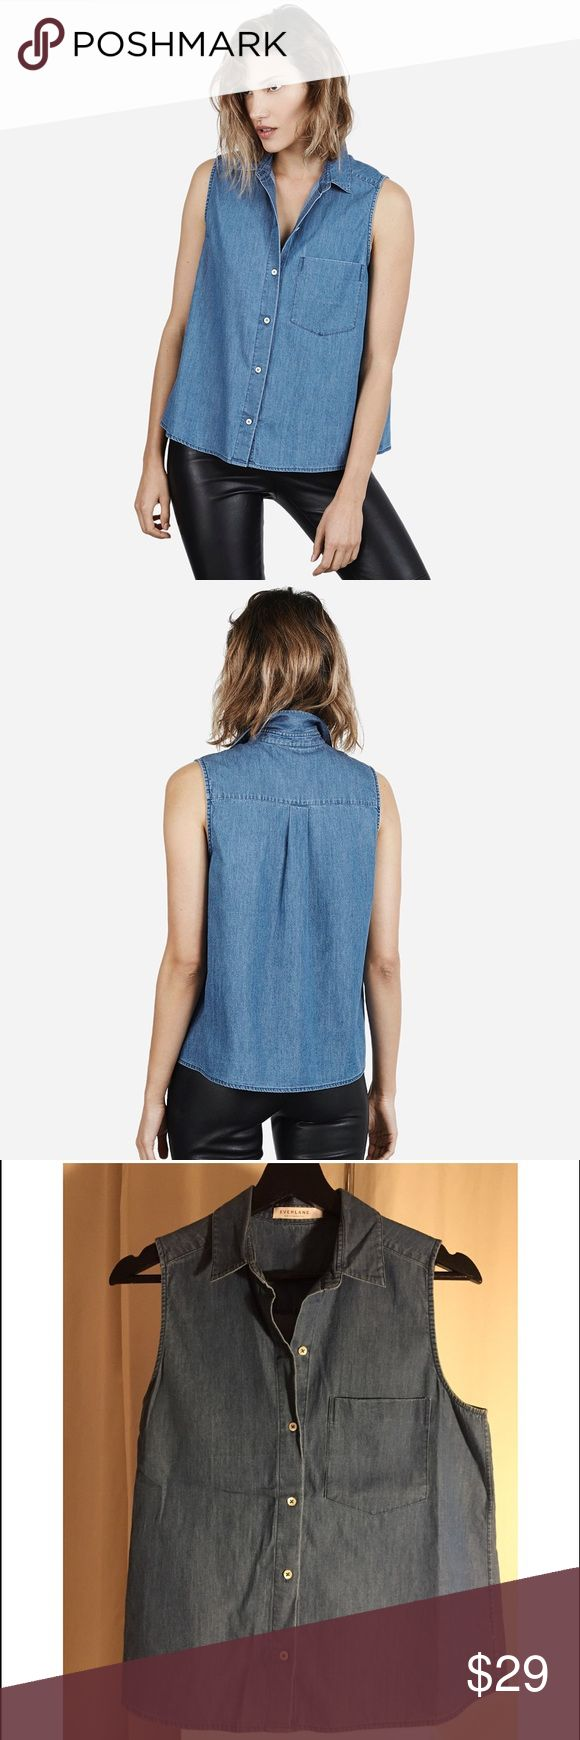 Everlane Sleeveless Denim Top Super soft lightweight denim shirt. 100% cotton. Hand wash cold. White pearl like buttons. One chest pocket. Worn once. Everlane Tops Button Down Shirts